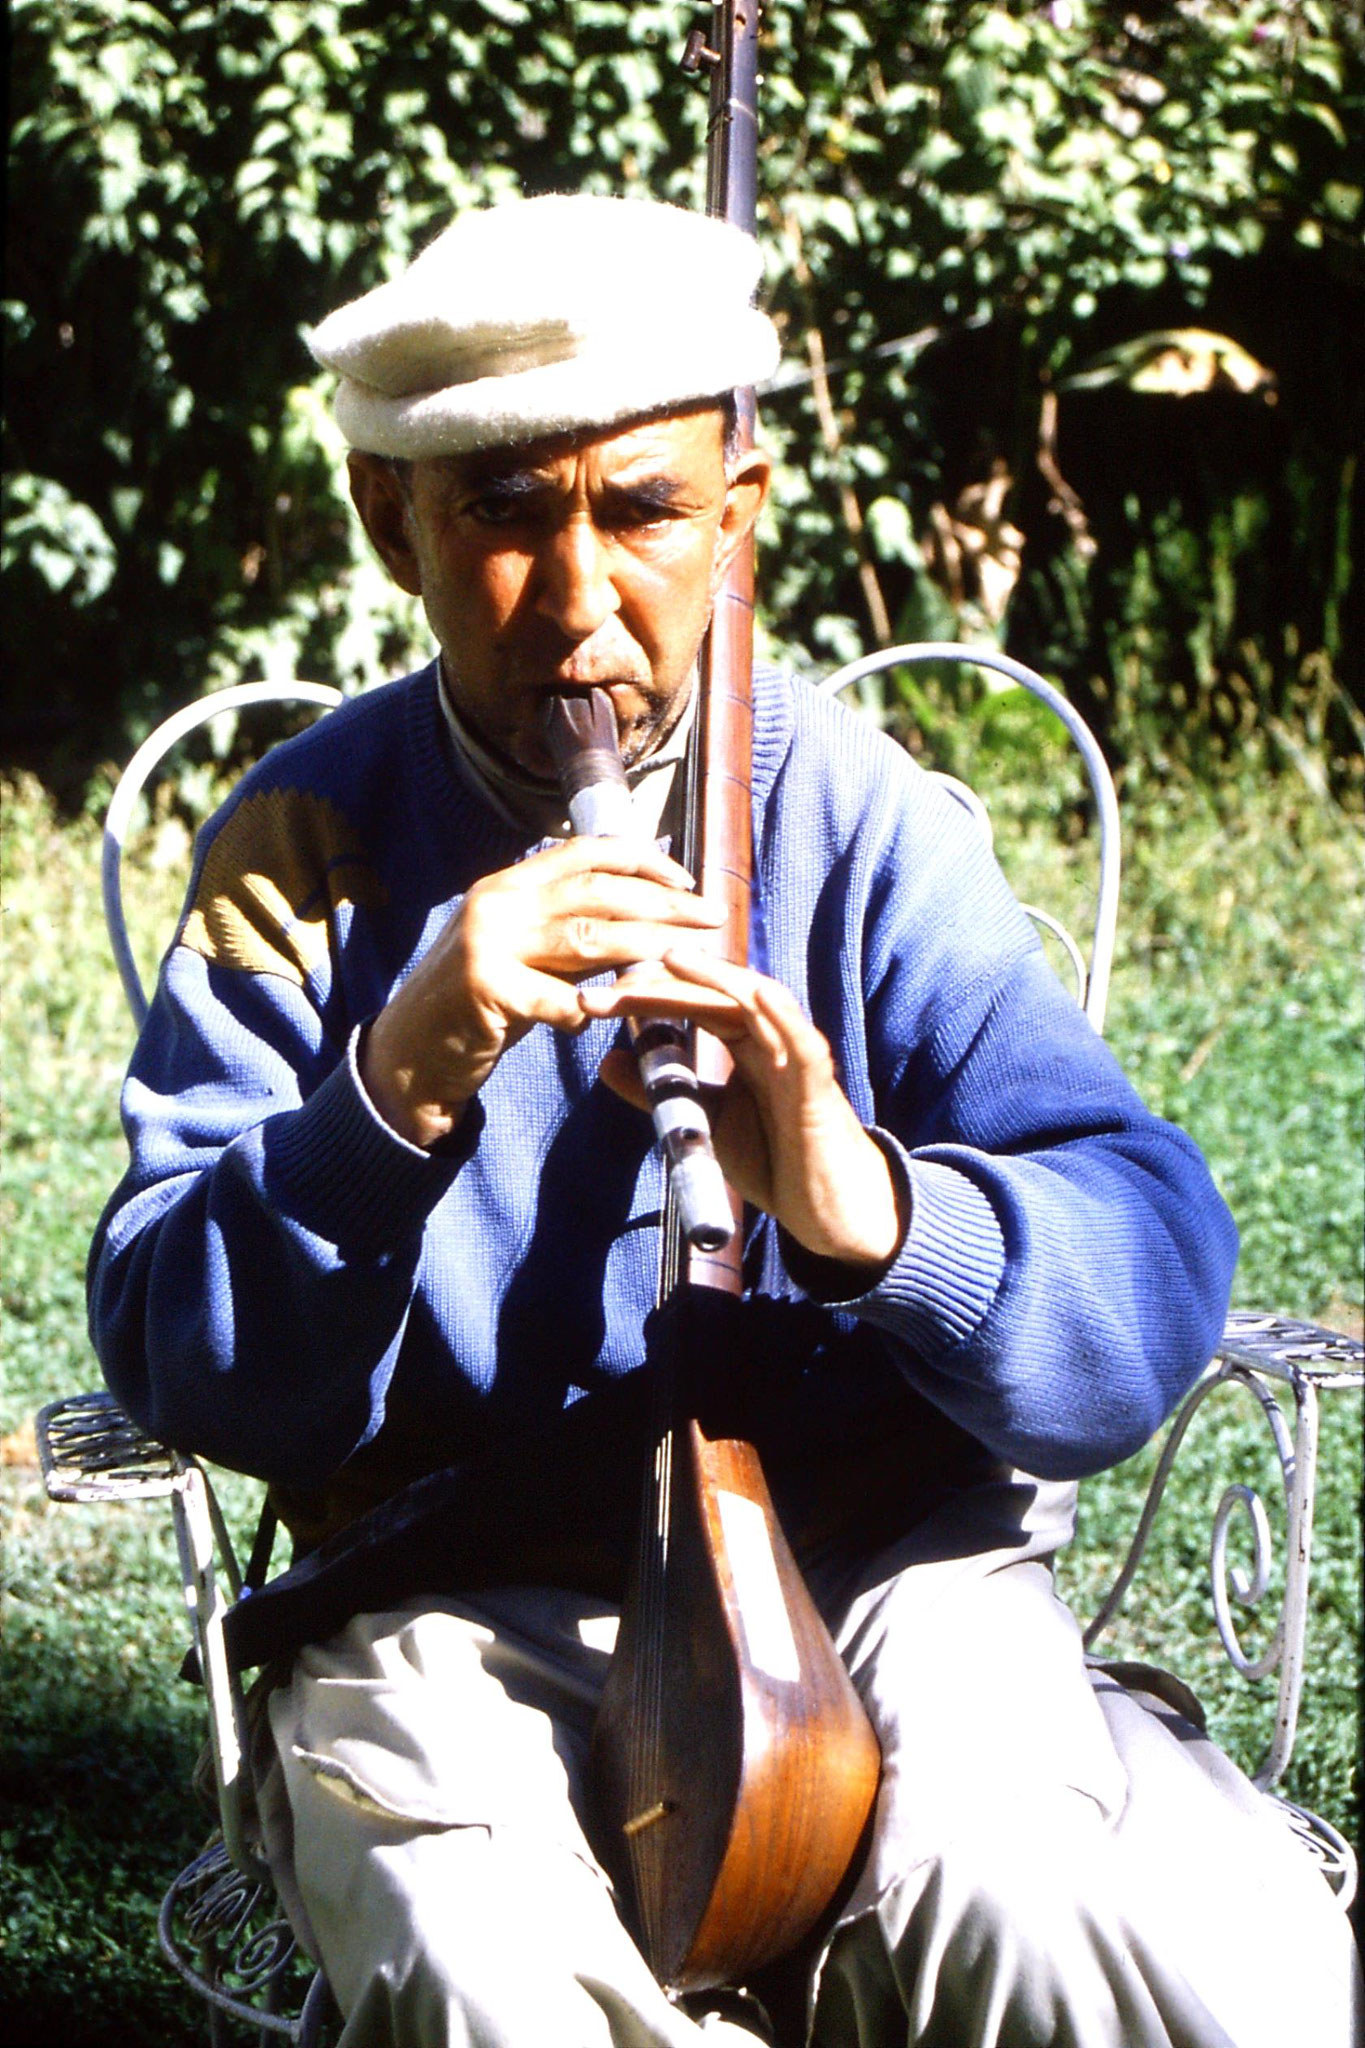 9/10/1989: 1: Gilgit, musician in Hunza Inn with sitar and utek